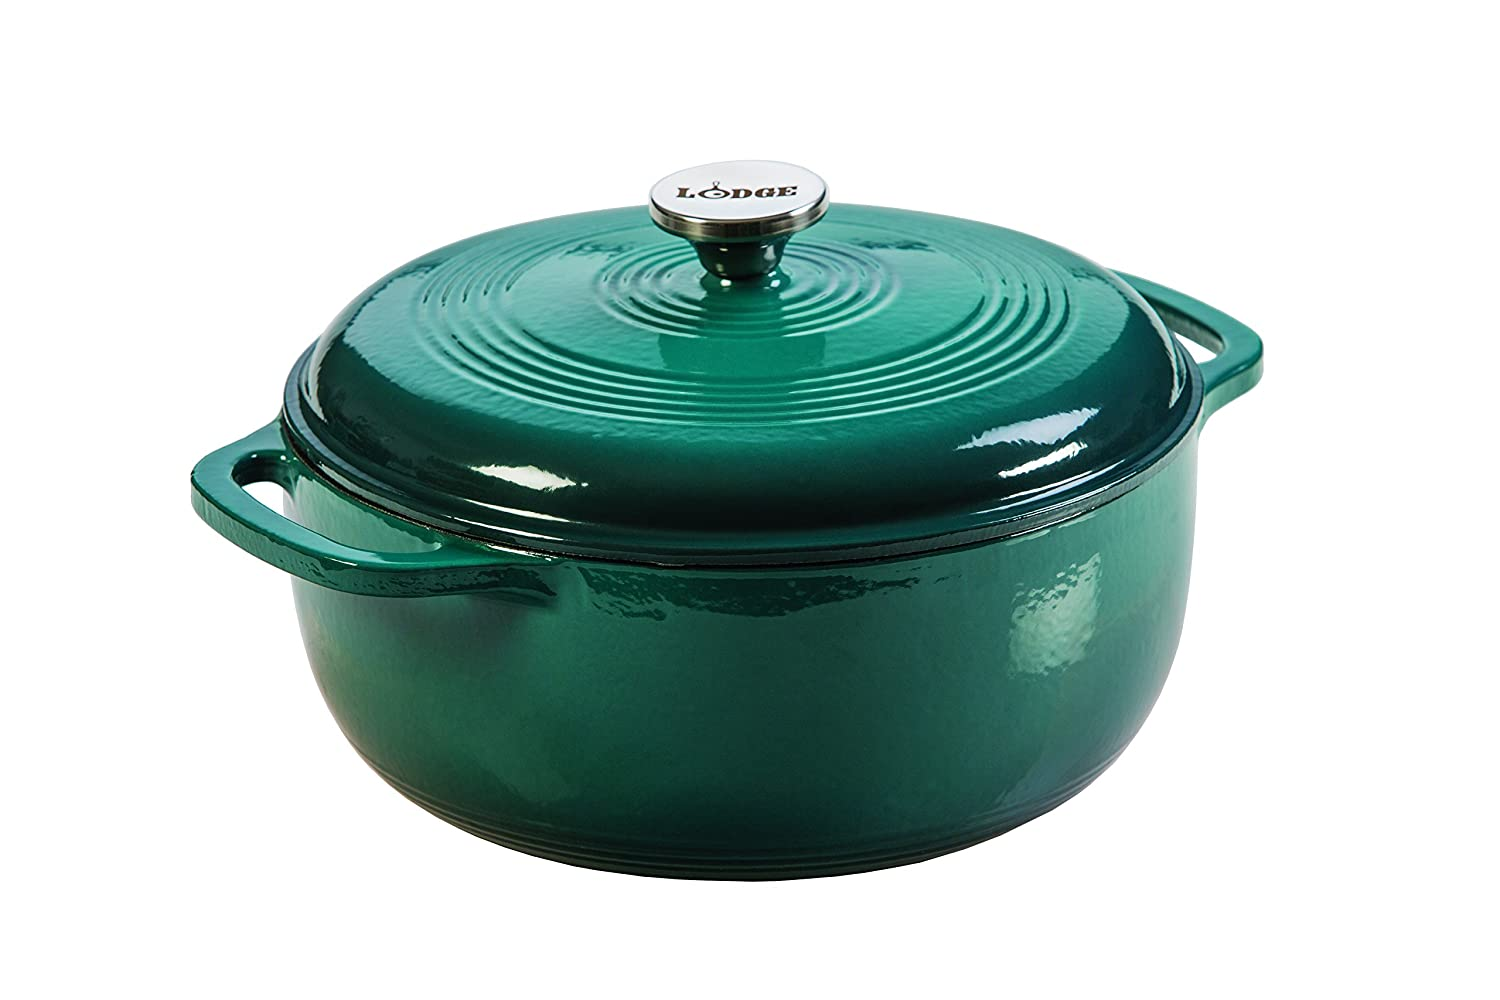 Lodge EC6D38 Enameled Cast Iron Dutch Oven, 6-Quart, Lagoon Lodge Manufacturing Company